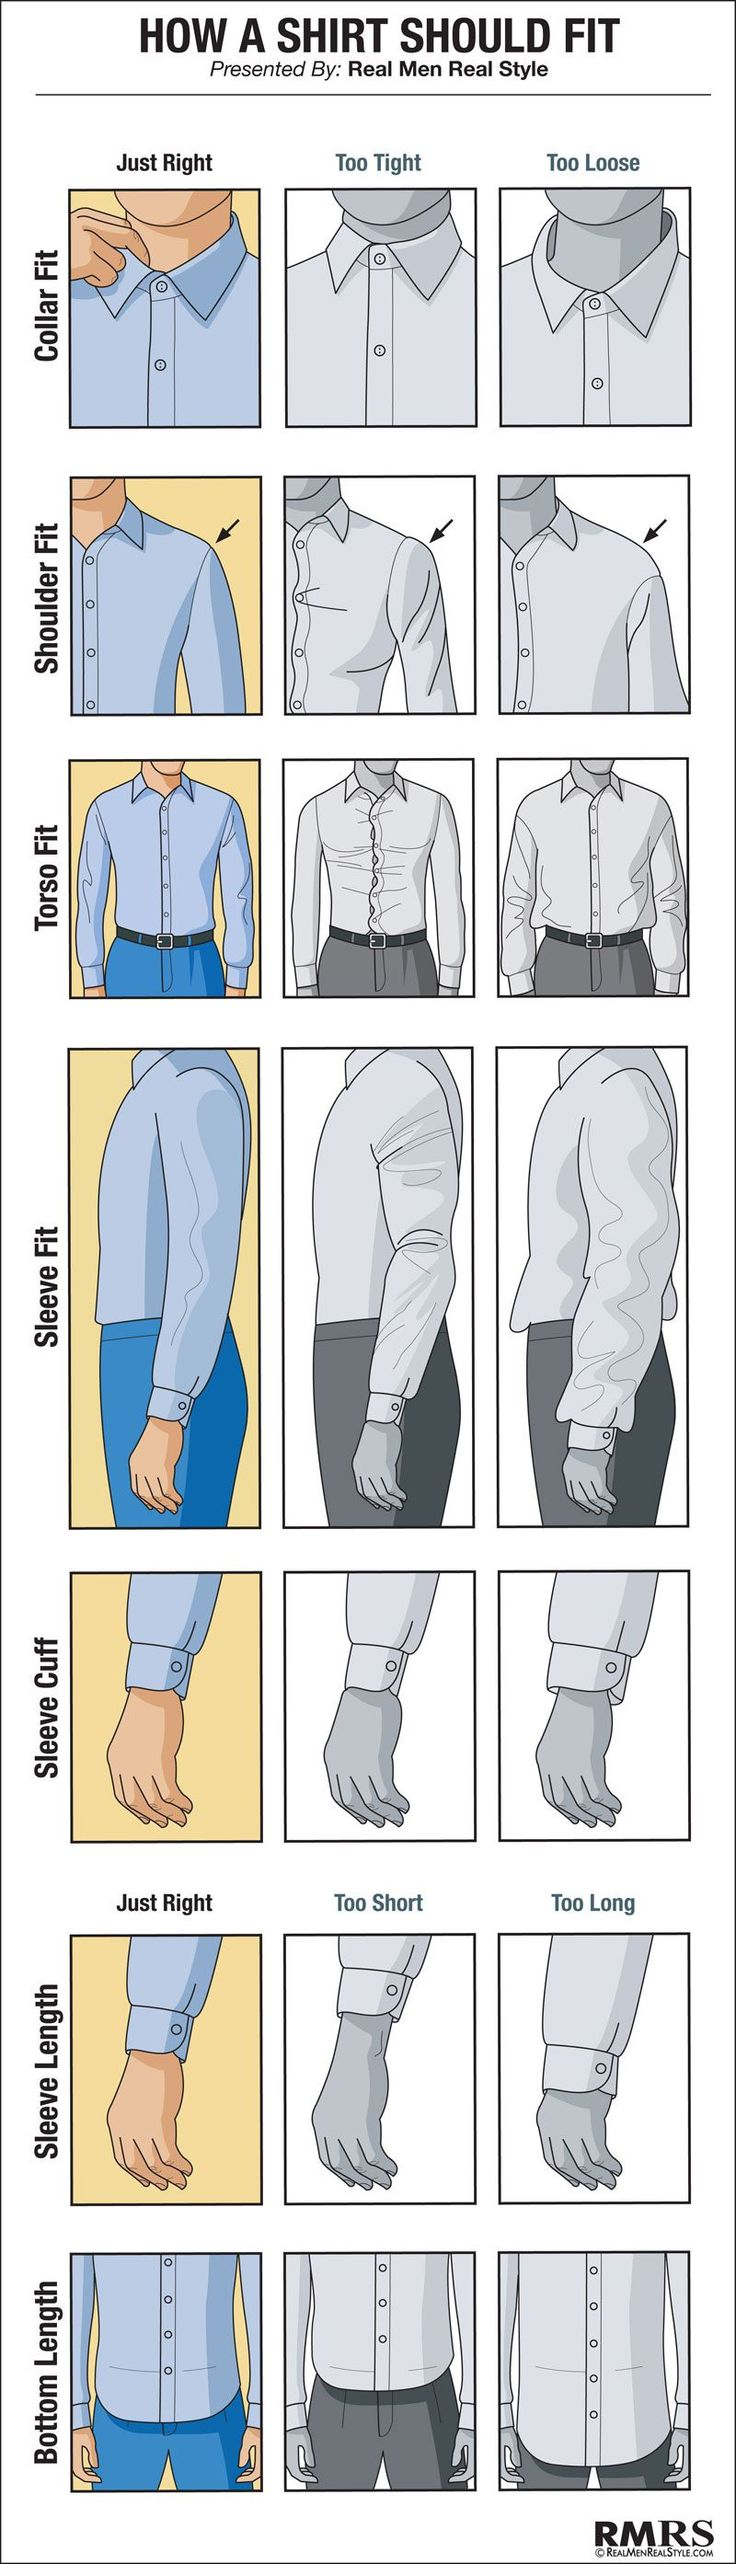 How A Dress Shirt Should Fit Infographic – Men's Proper Fitting Dress Shirts (via @Antonio Covelo Centeno)